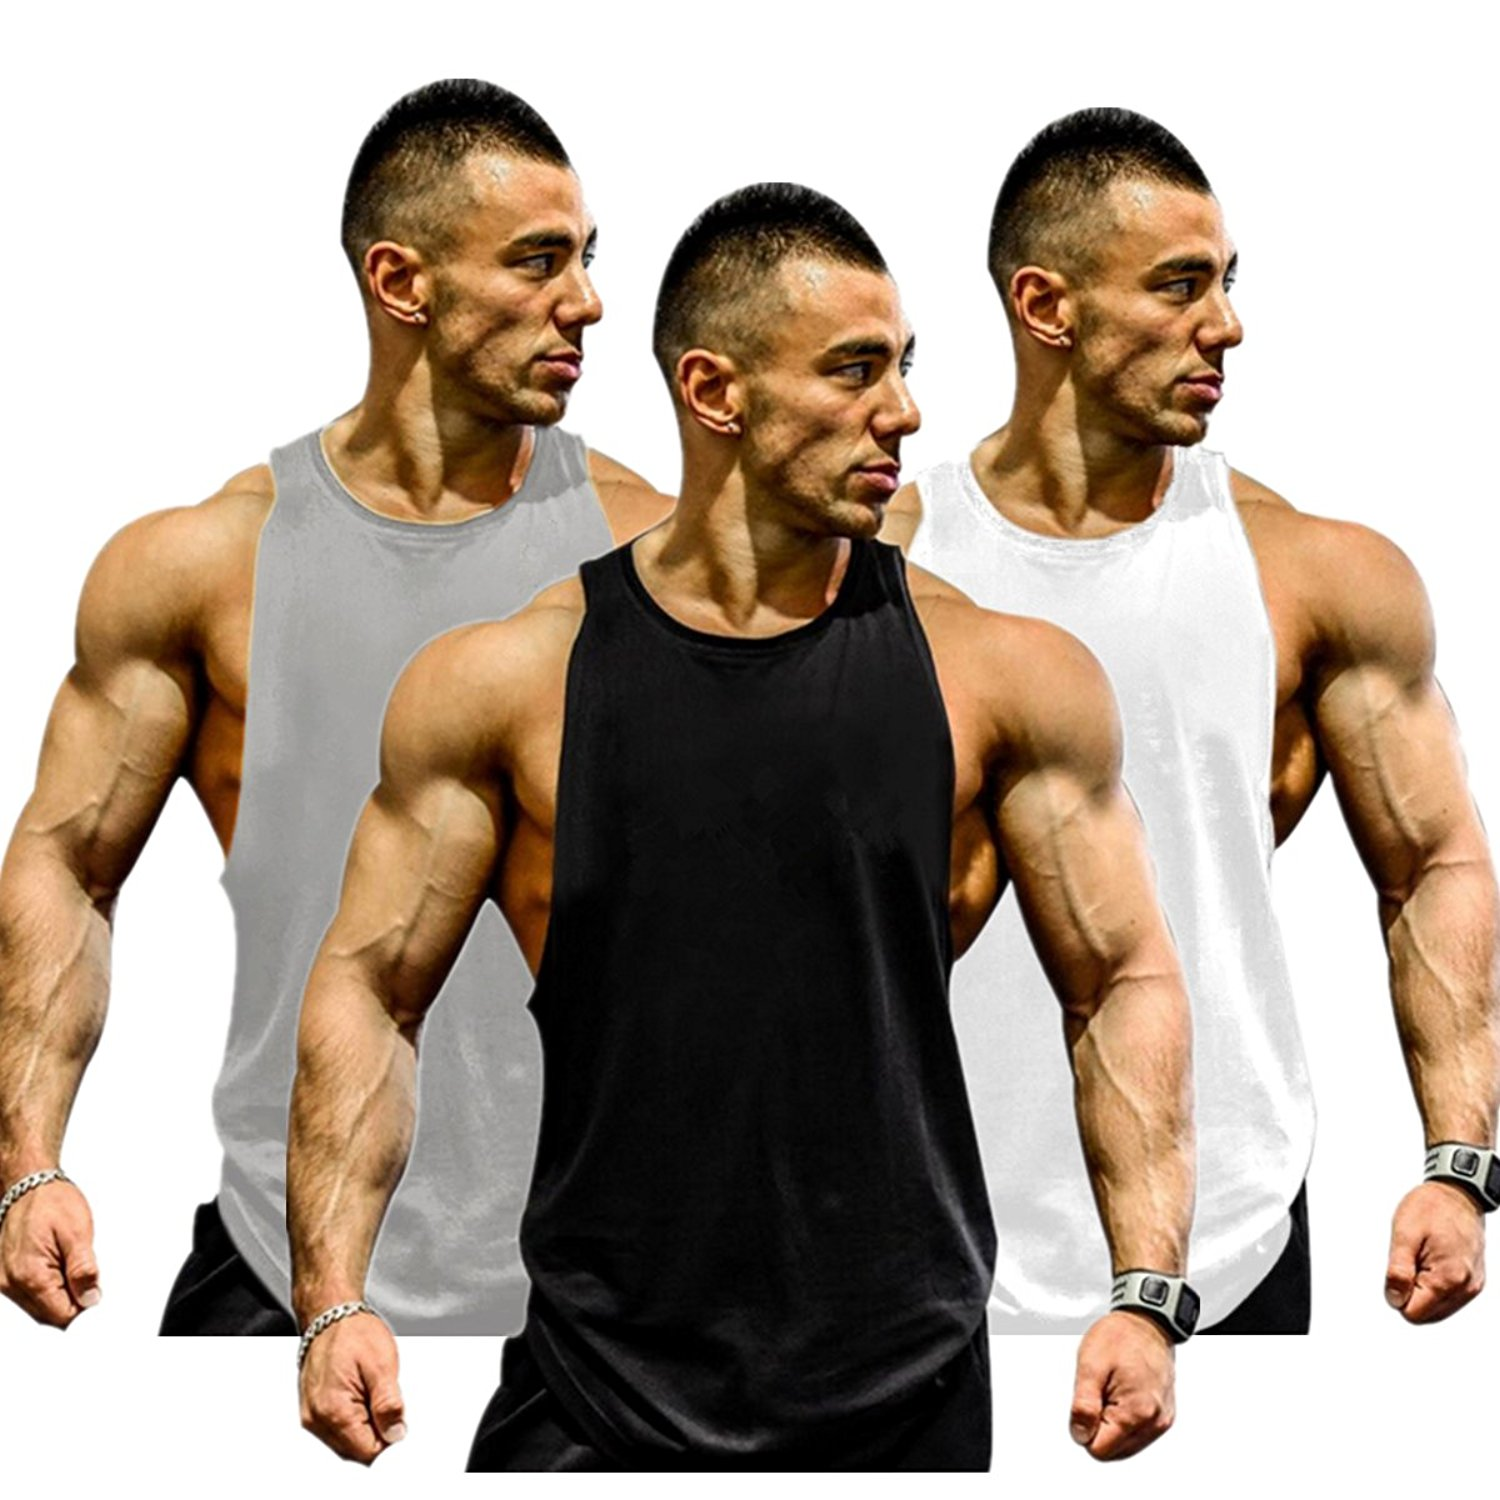 c498287f43c Get Quotations · Muscle Killer 3-Pack Mens Gym Tank Tops Muscle Cut  Stringer Bodybuilding Workout Sleeveless Gym